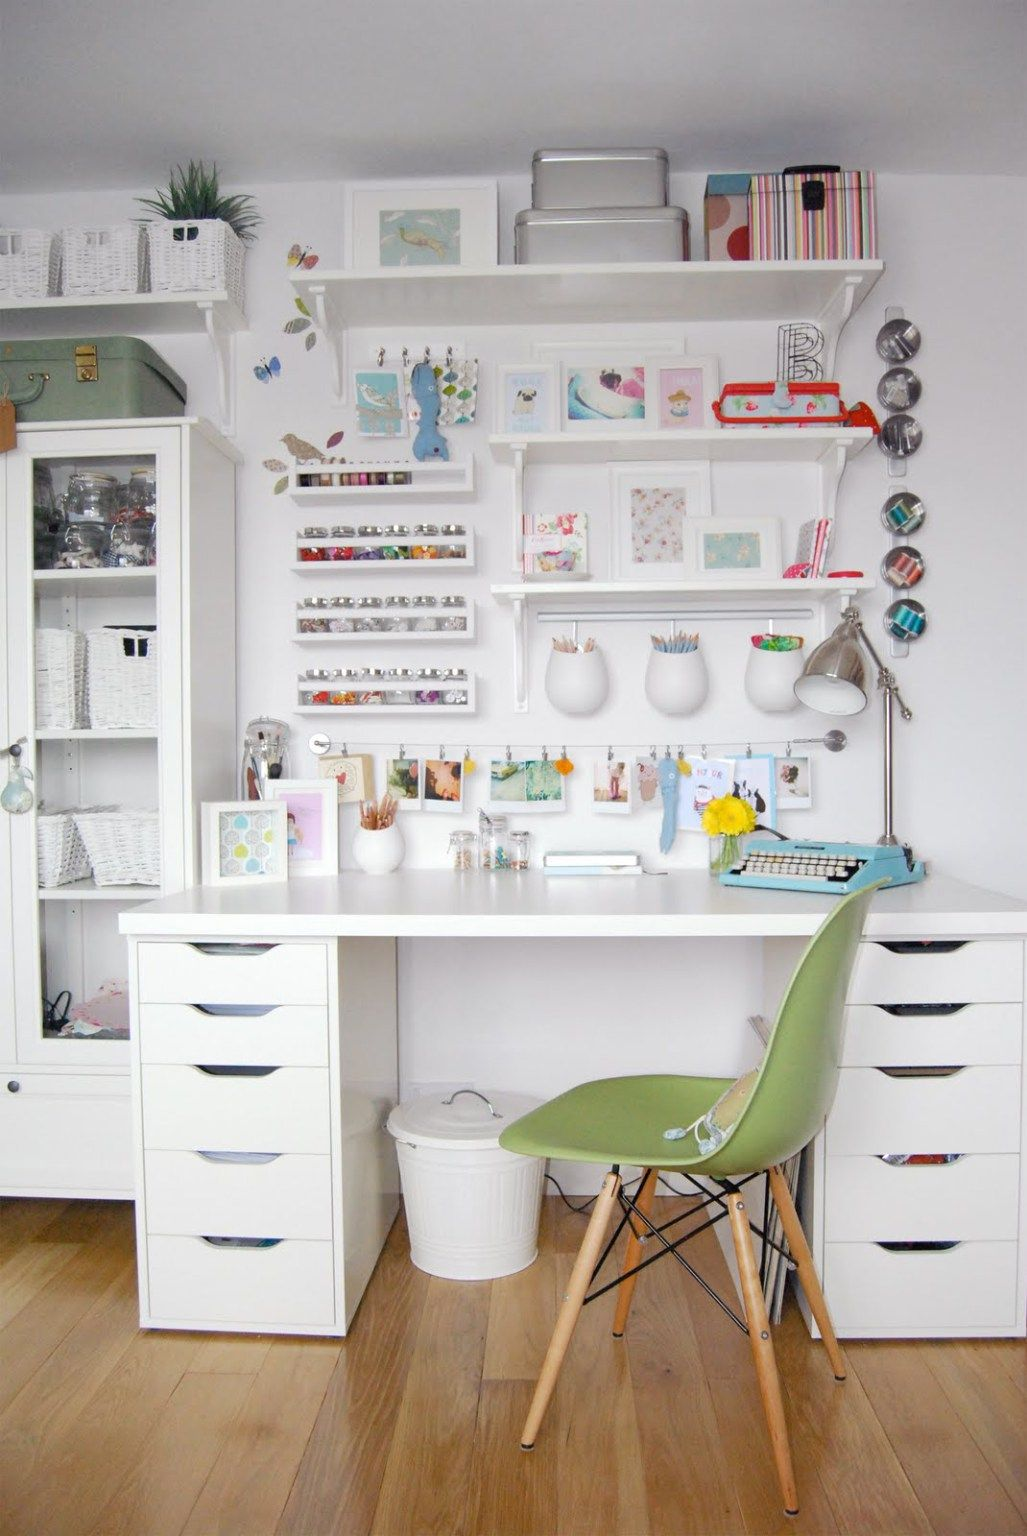 Ikea Craft Rooms - Ikea Organizing Ideas | Pinterest | Ikea craft ...